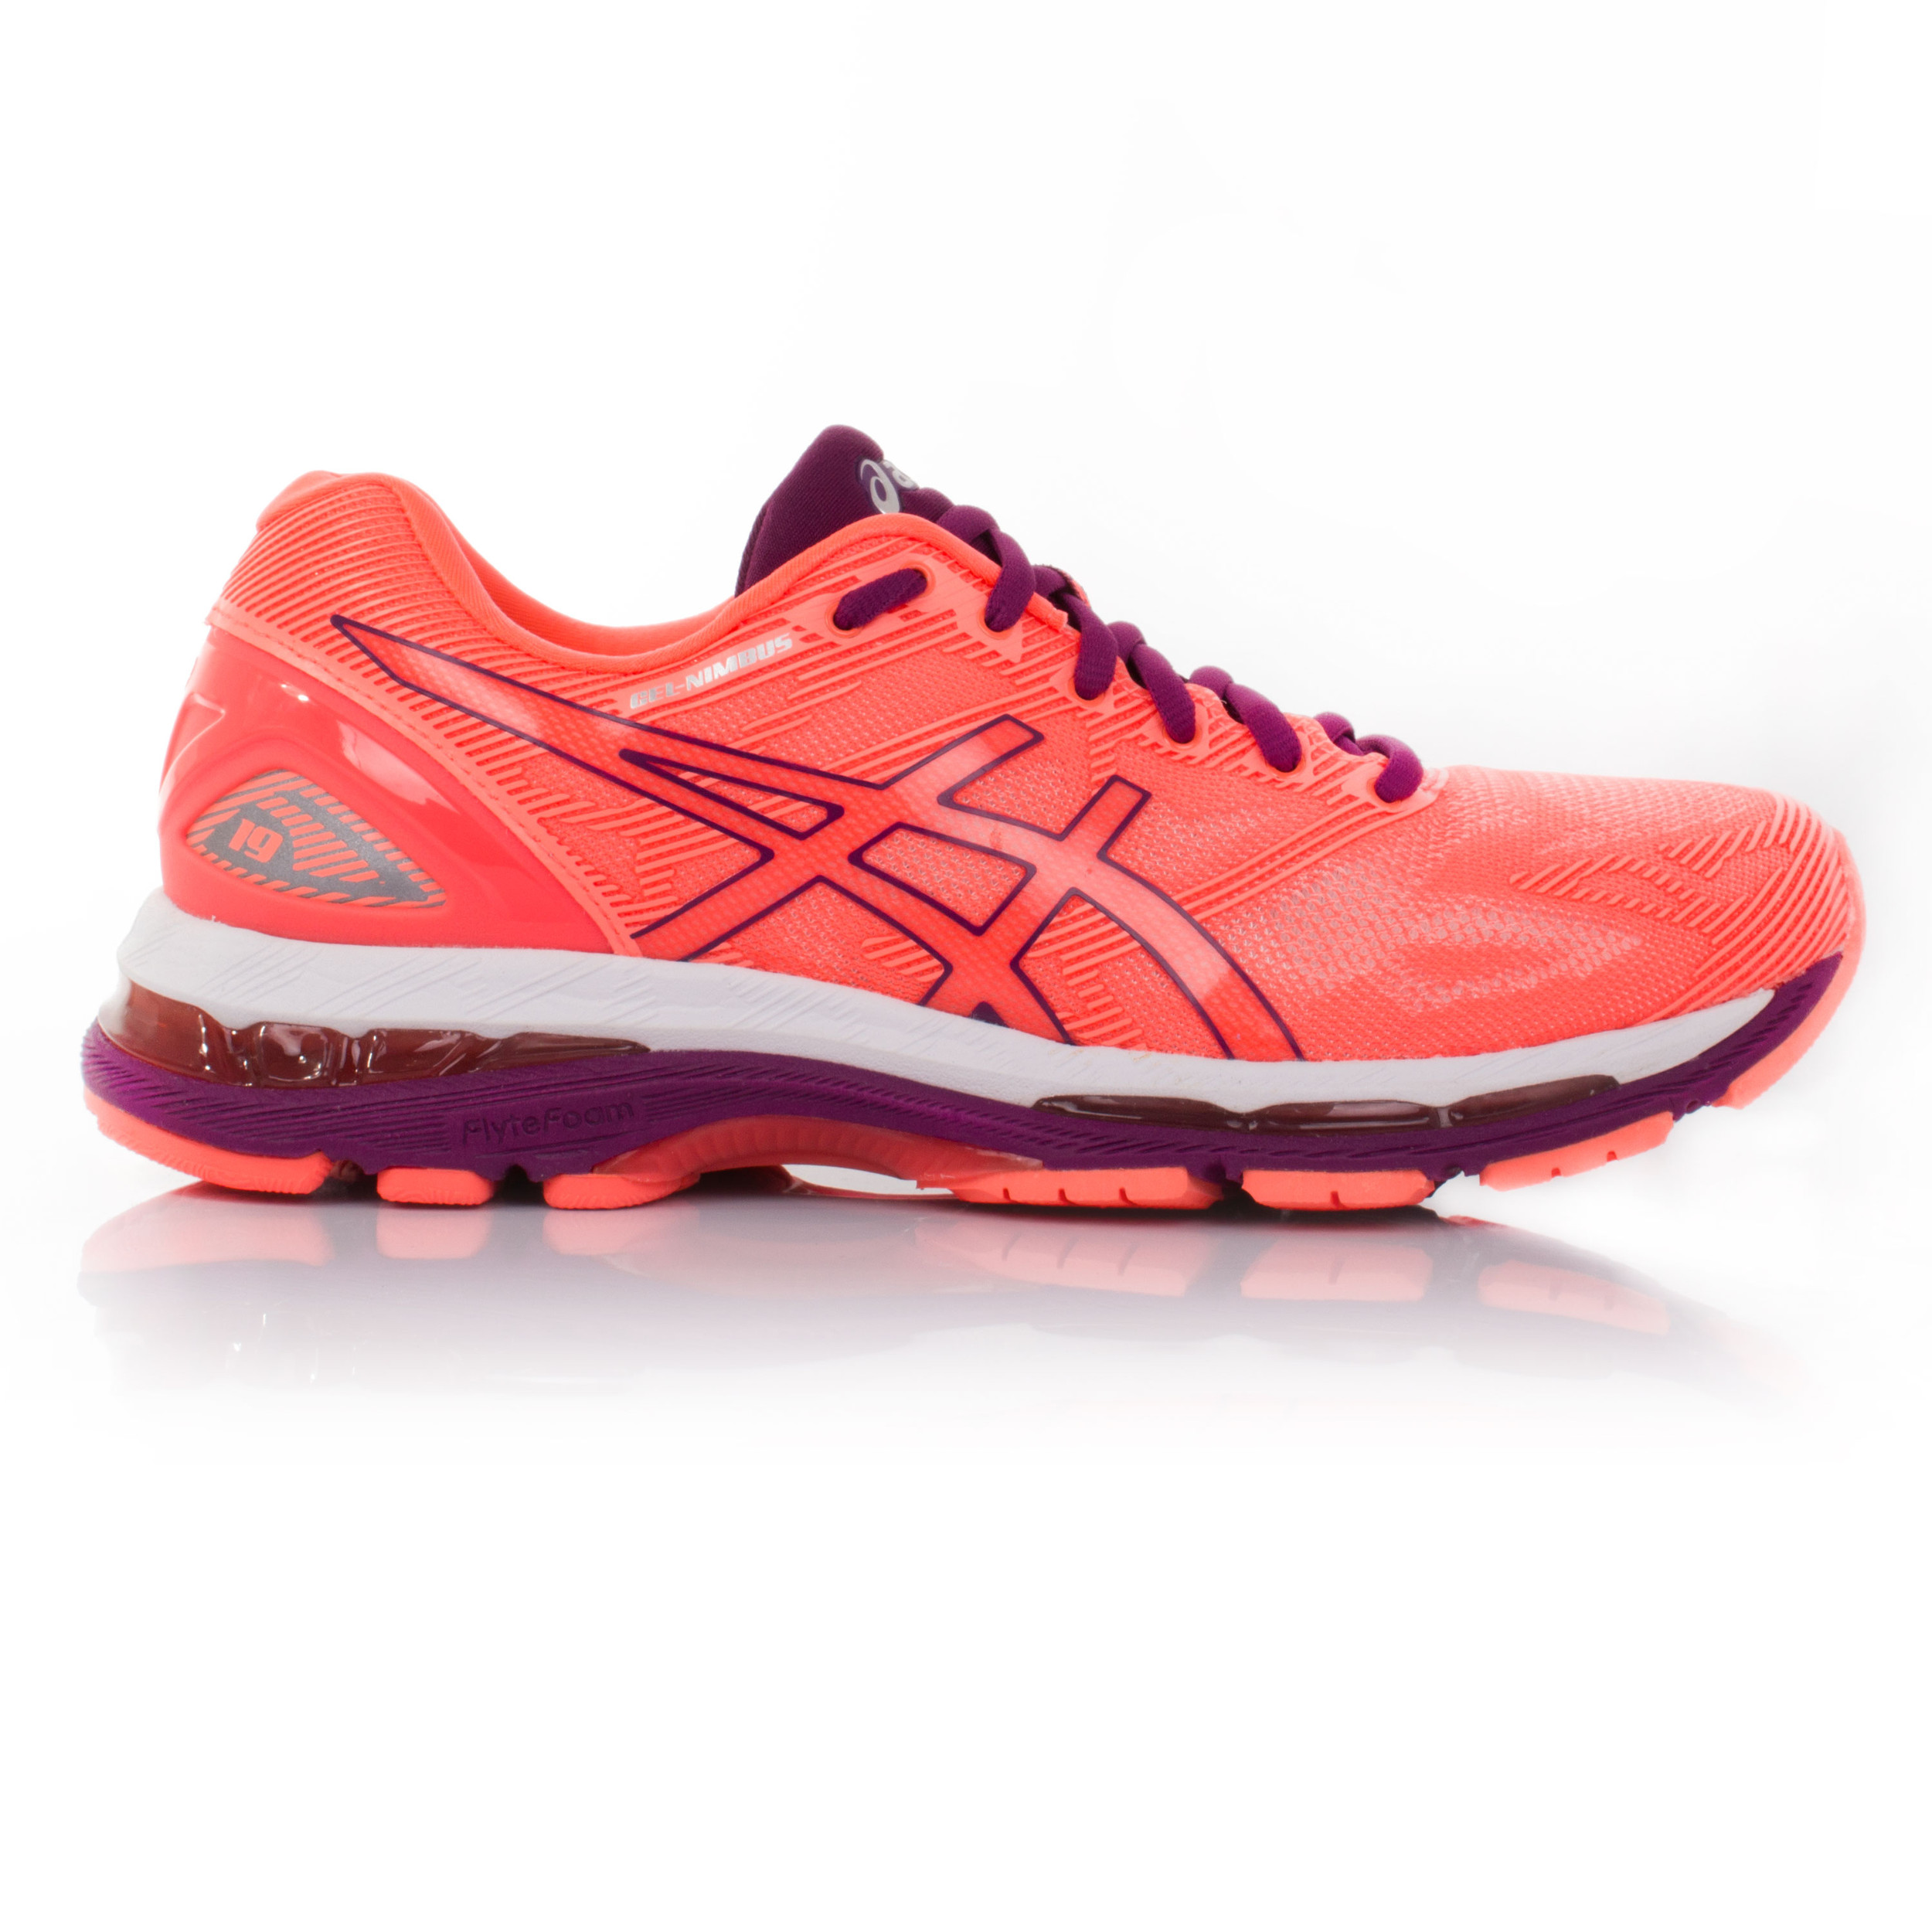 asics gel nimbus 19 femmes orange amorti running fitness chaussures baskets ebay. Black Bedroom Furniture Sets. Home Design Ideas